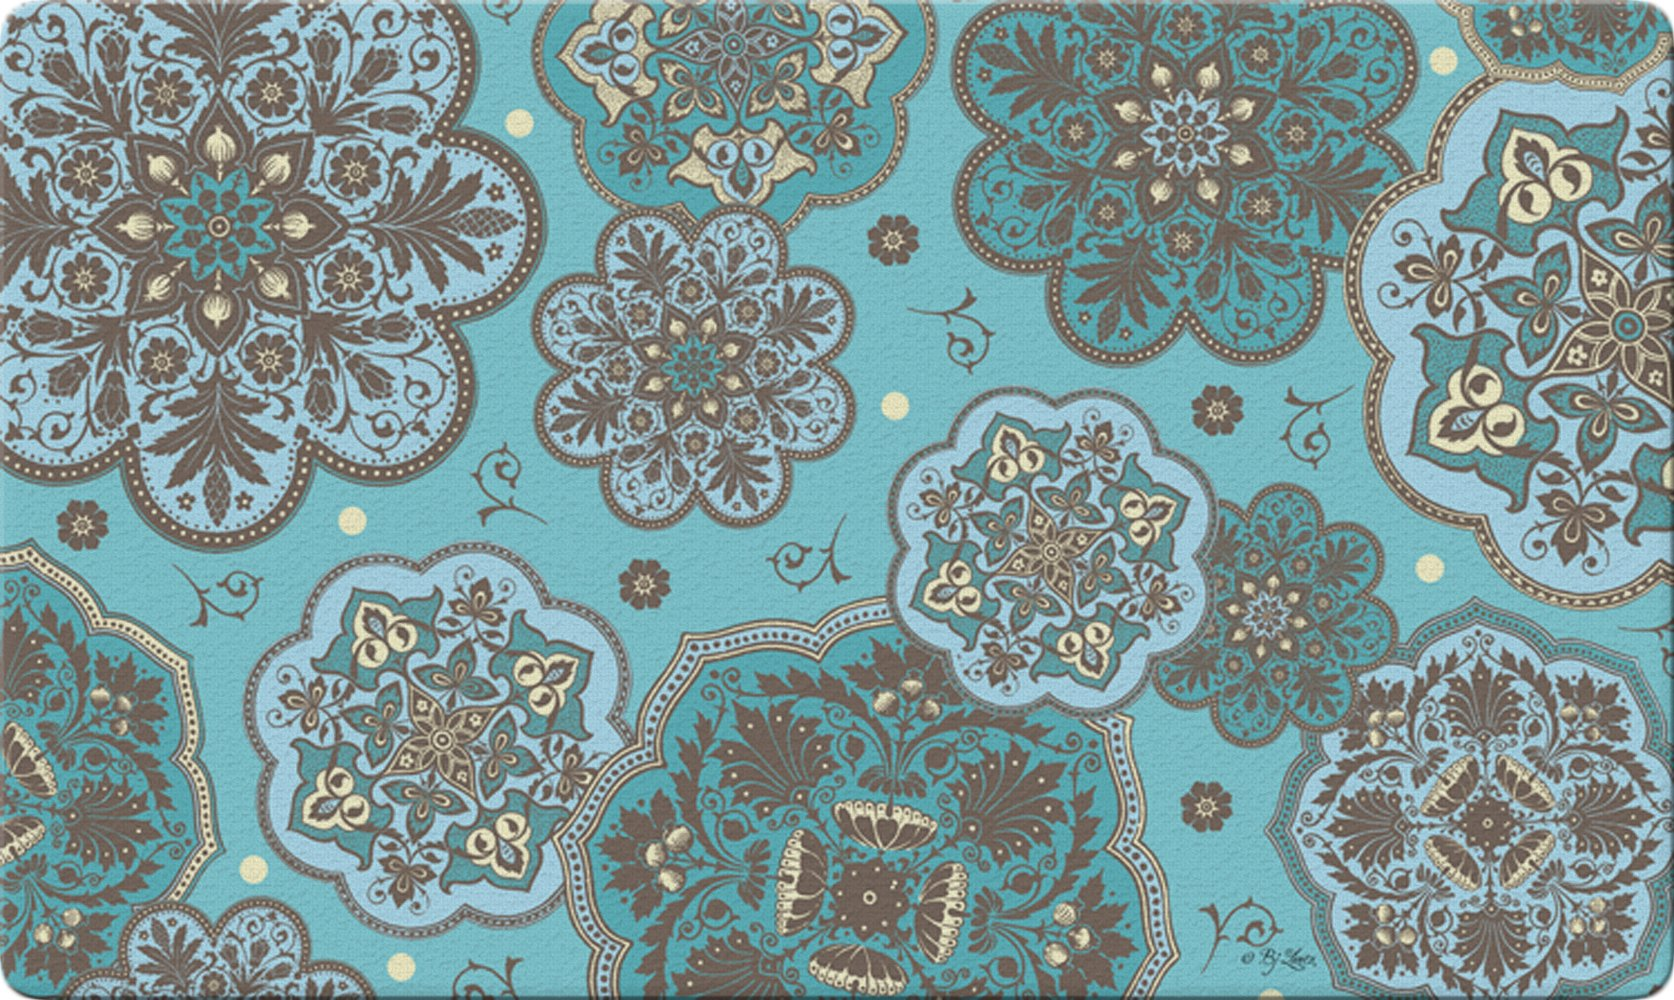 Toland Home Garden Blue Marrakesh 18 x 30 Inch Decorative Floor Mat Paisley Design Pattern Doormat